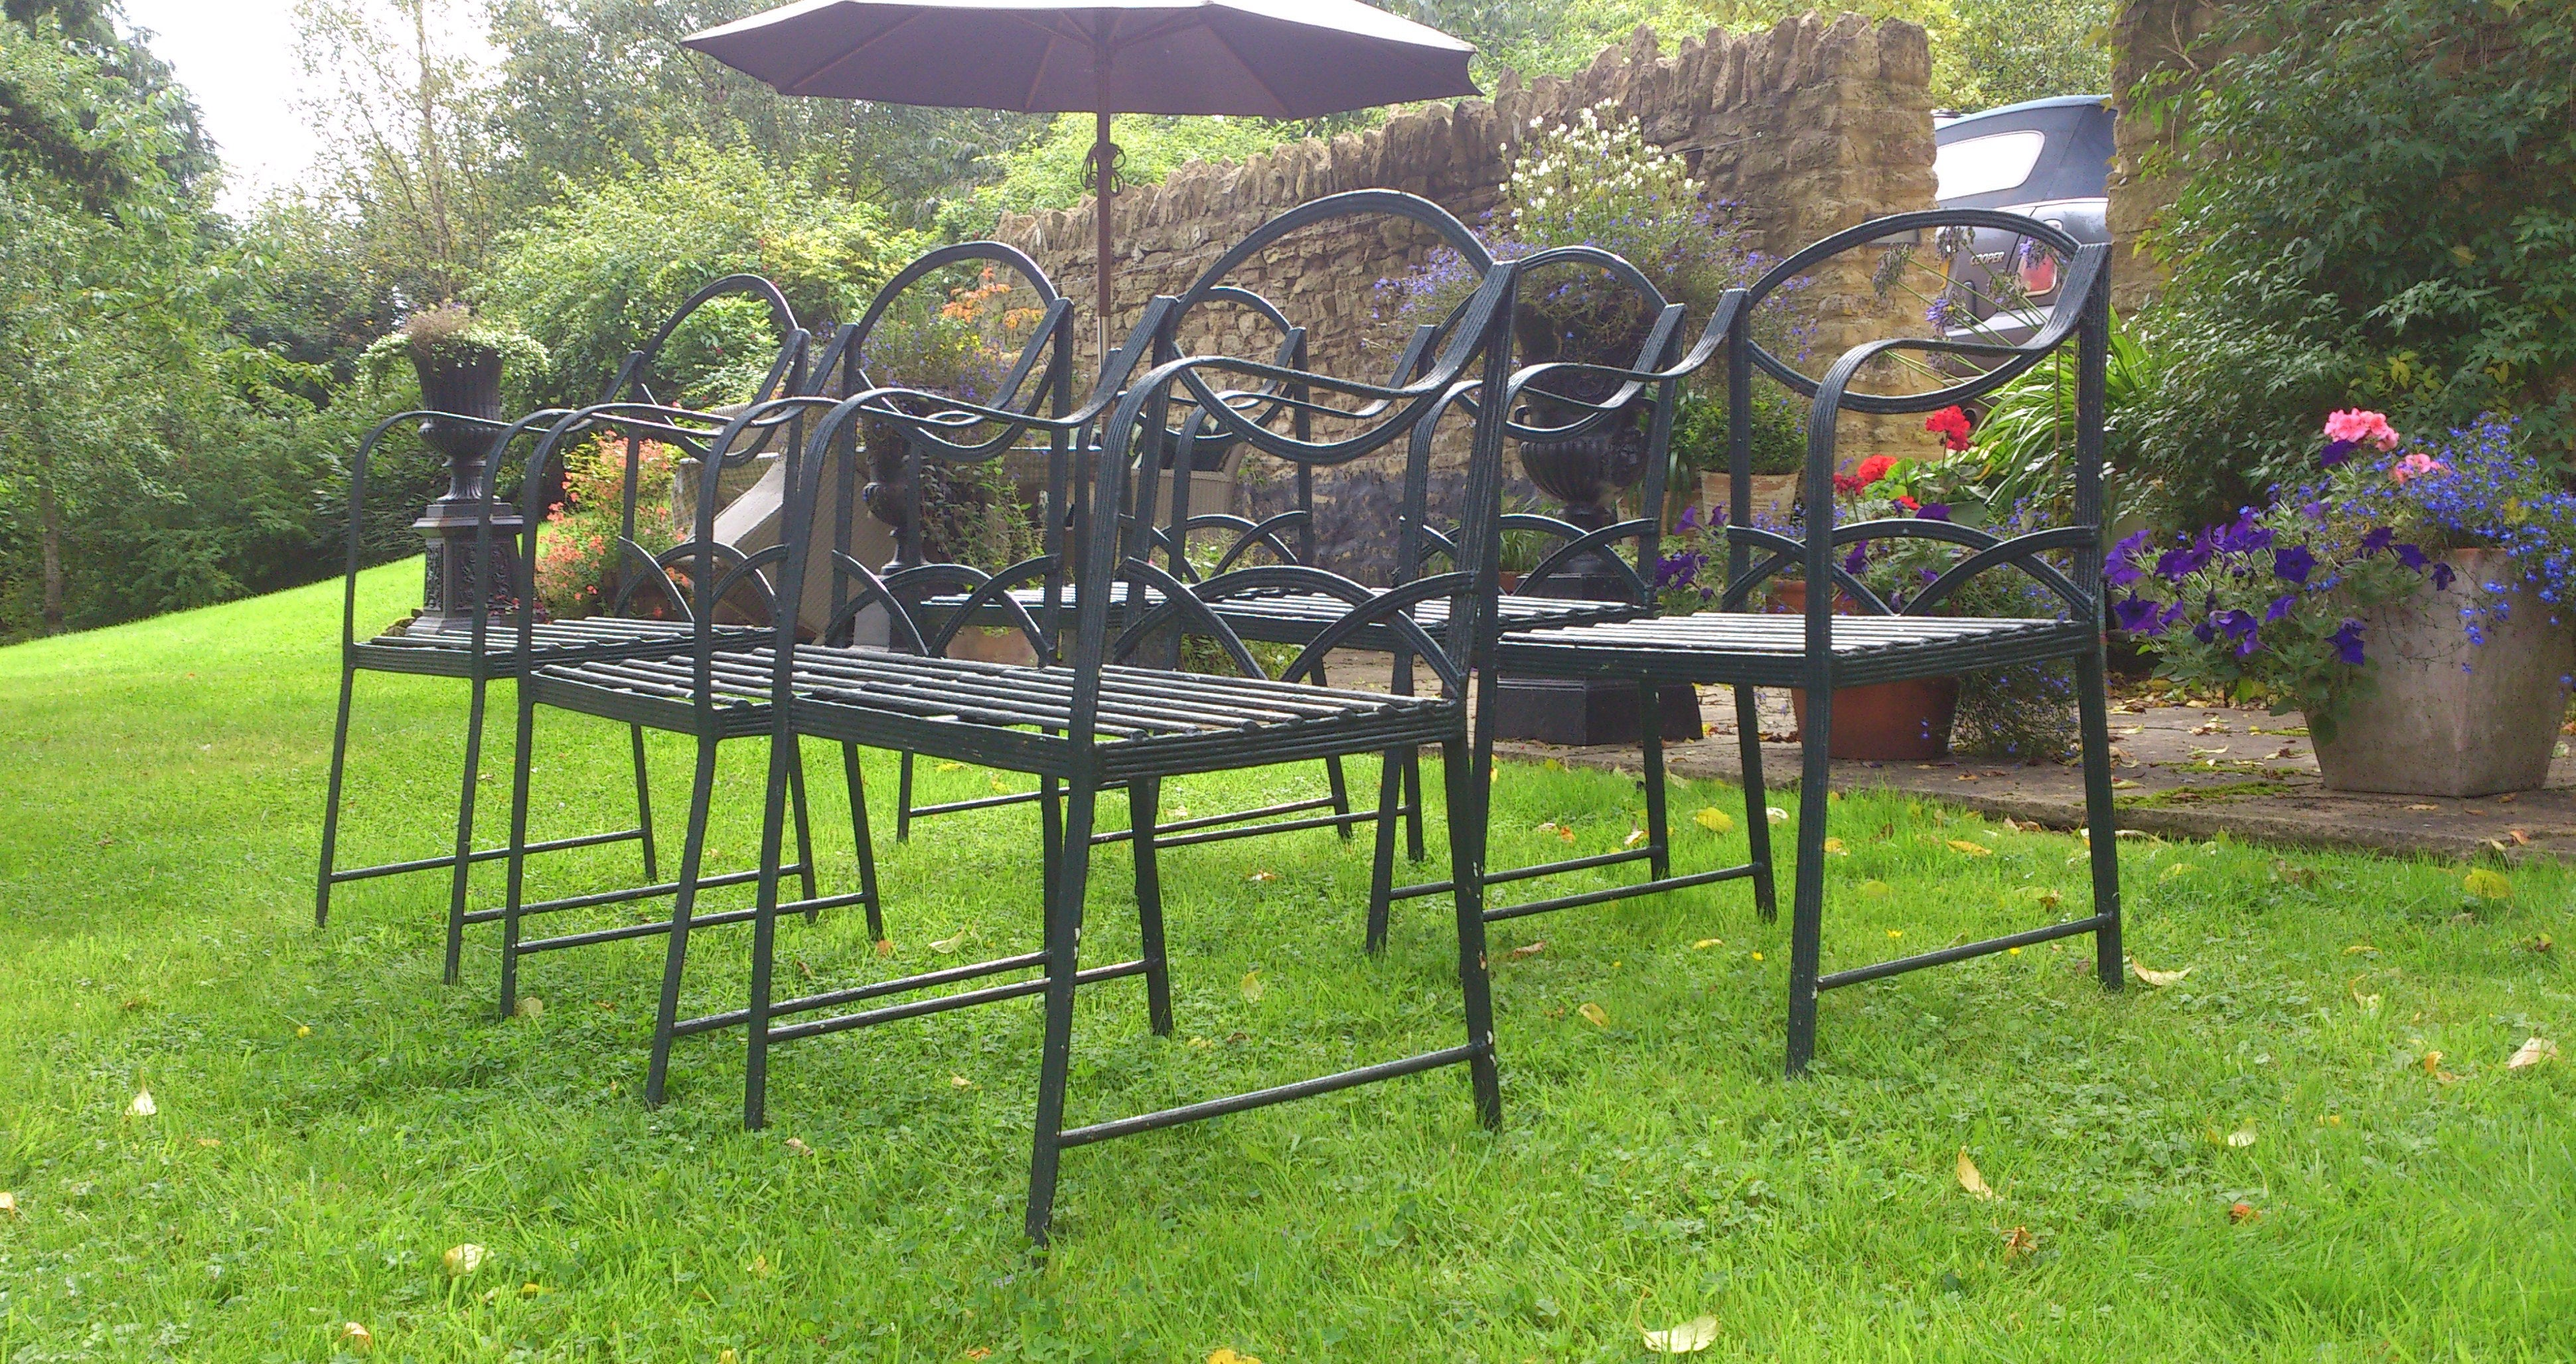 Awe Inspiring Set Of Six Hand Made Wrought Iron Garden Chairs In The Regency Style Download Free Architecture Designs Rallybritishbridgeorg